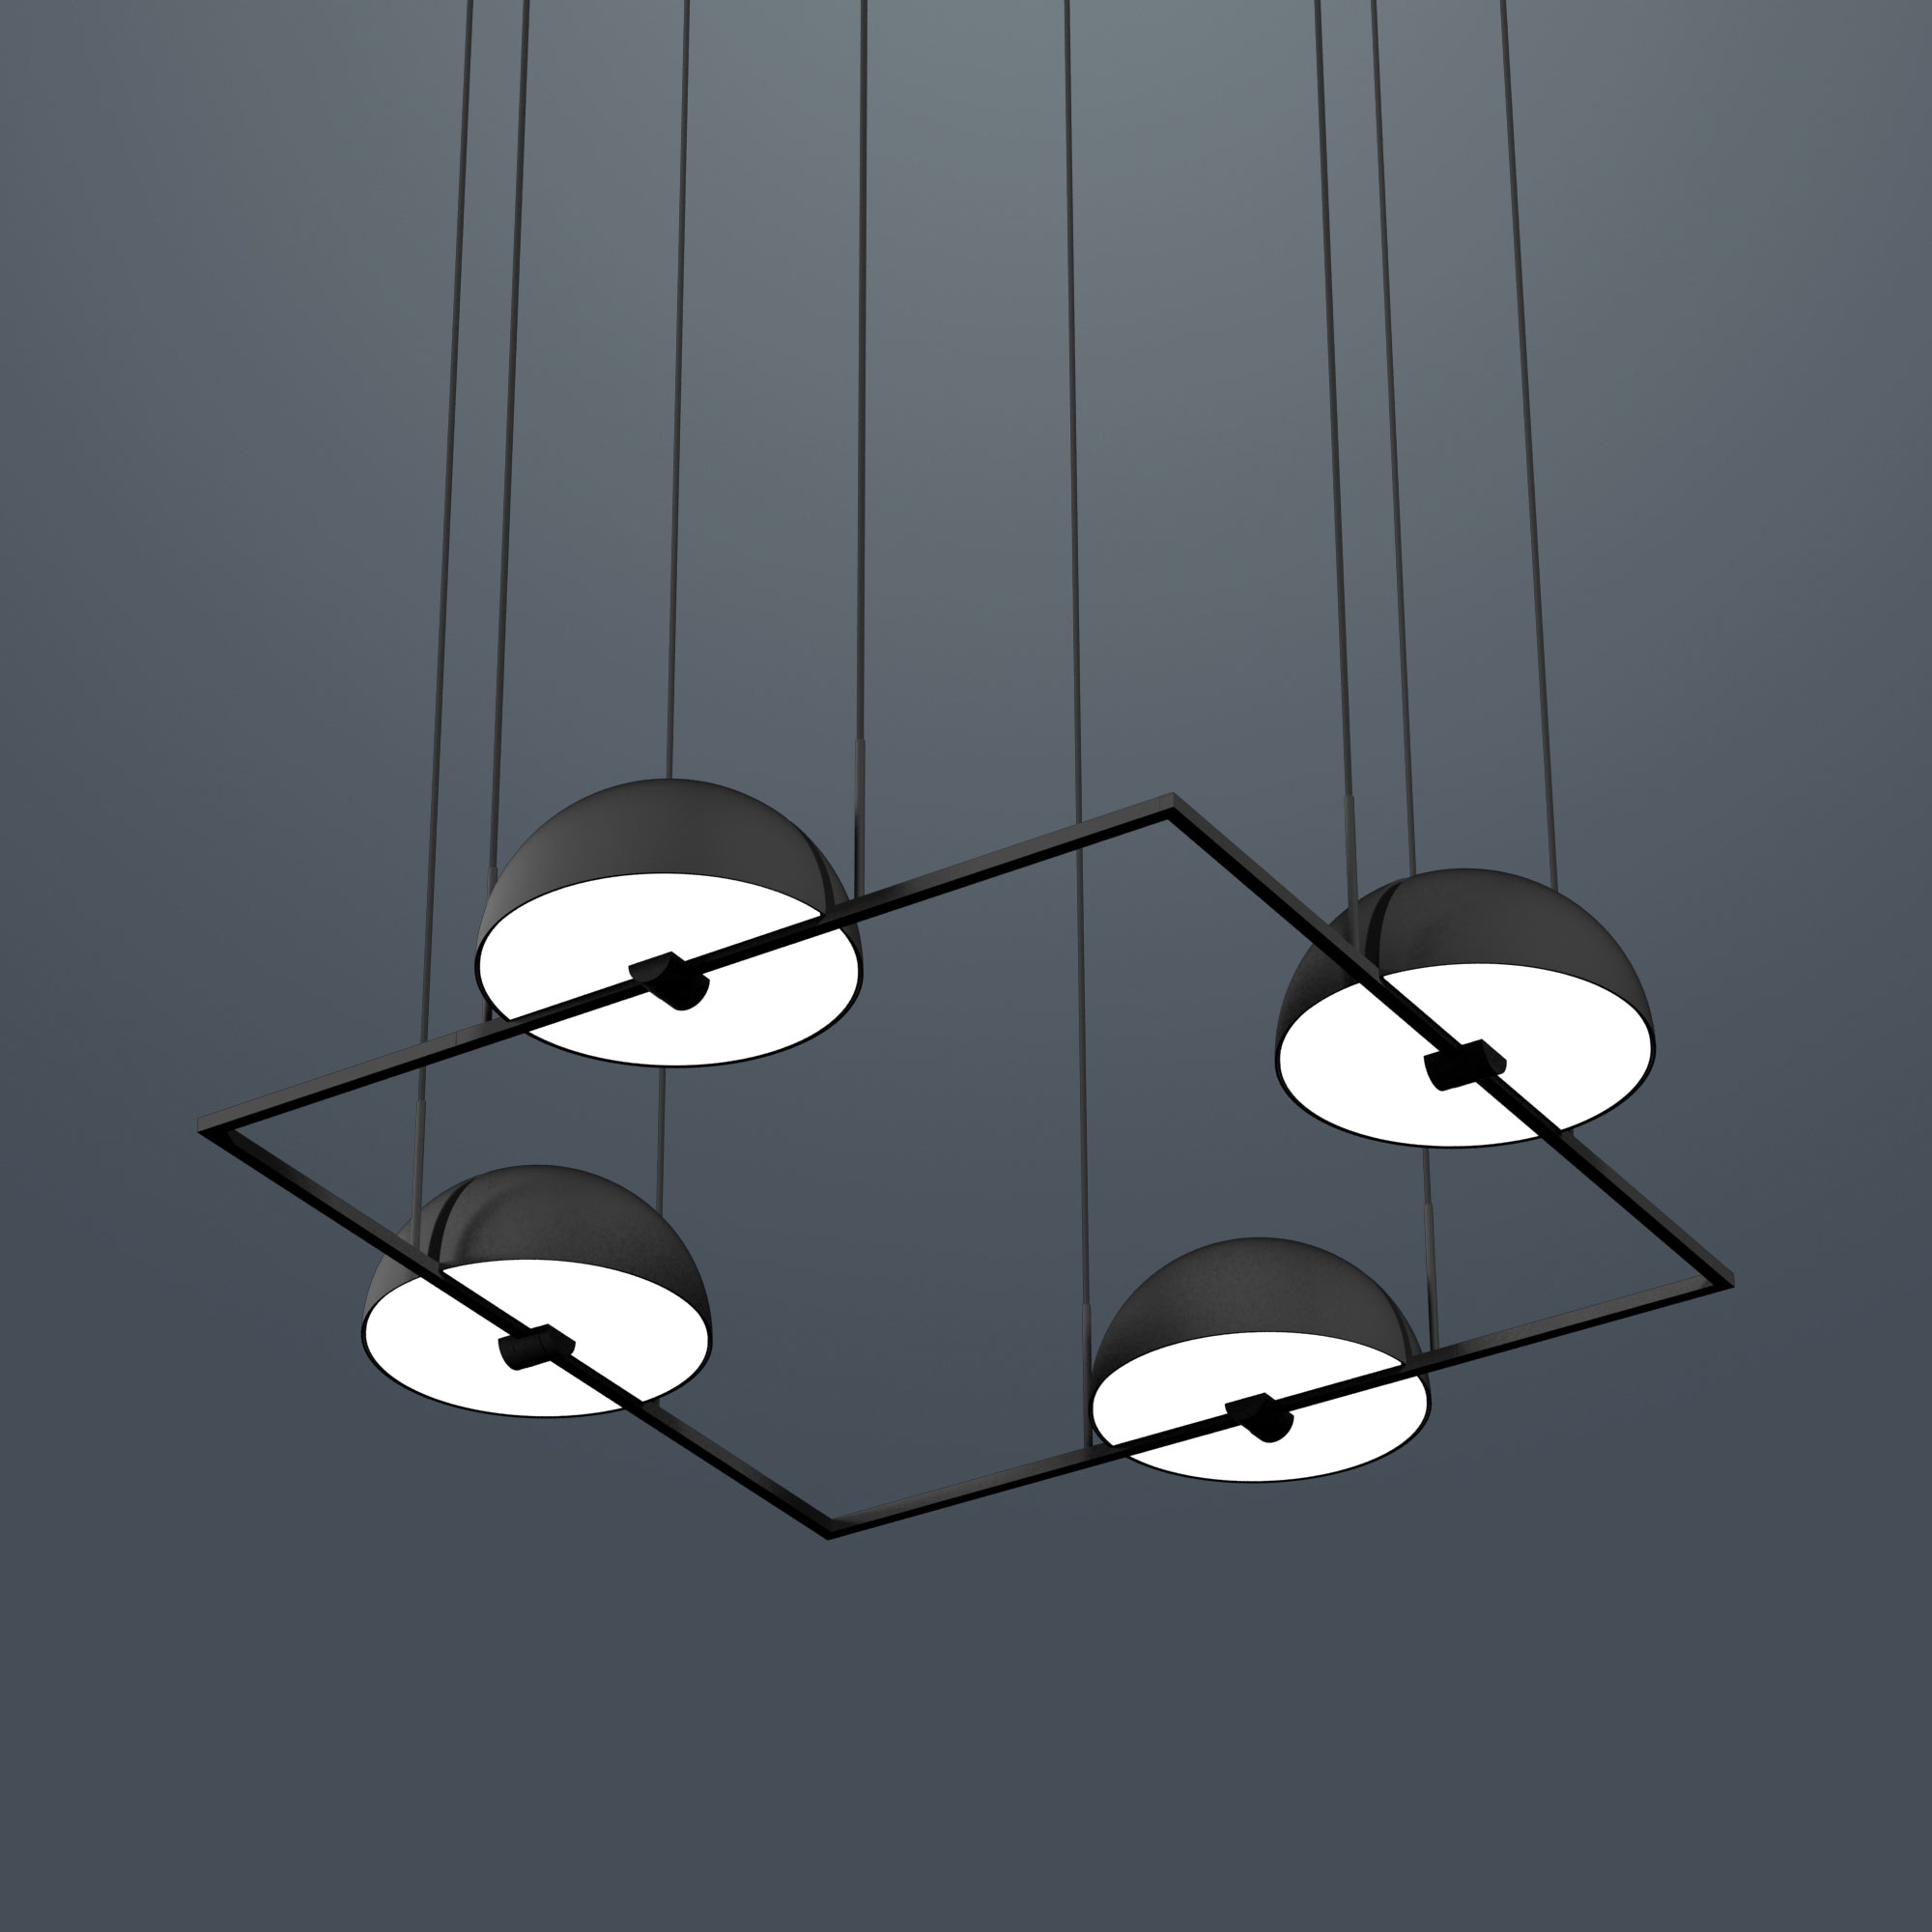 Trapeze (Quartette) pendant lamp by Jette Scheib for Oblure